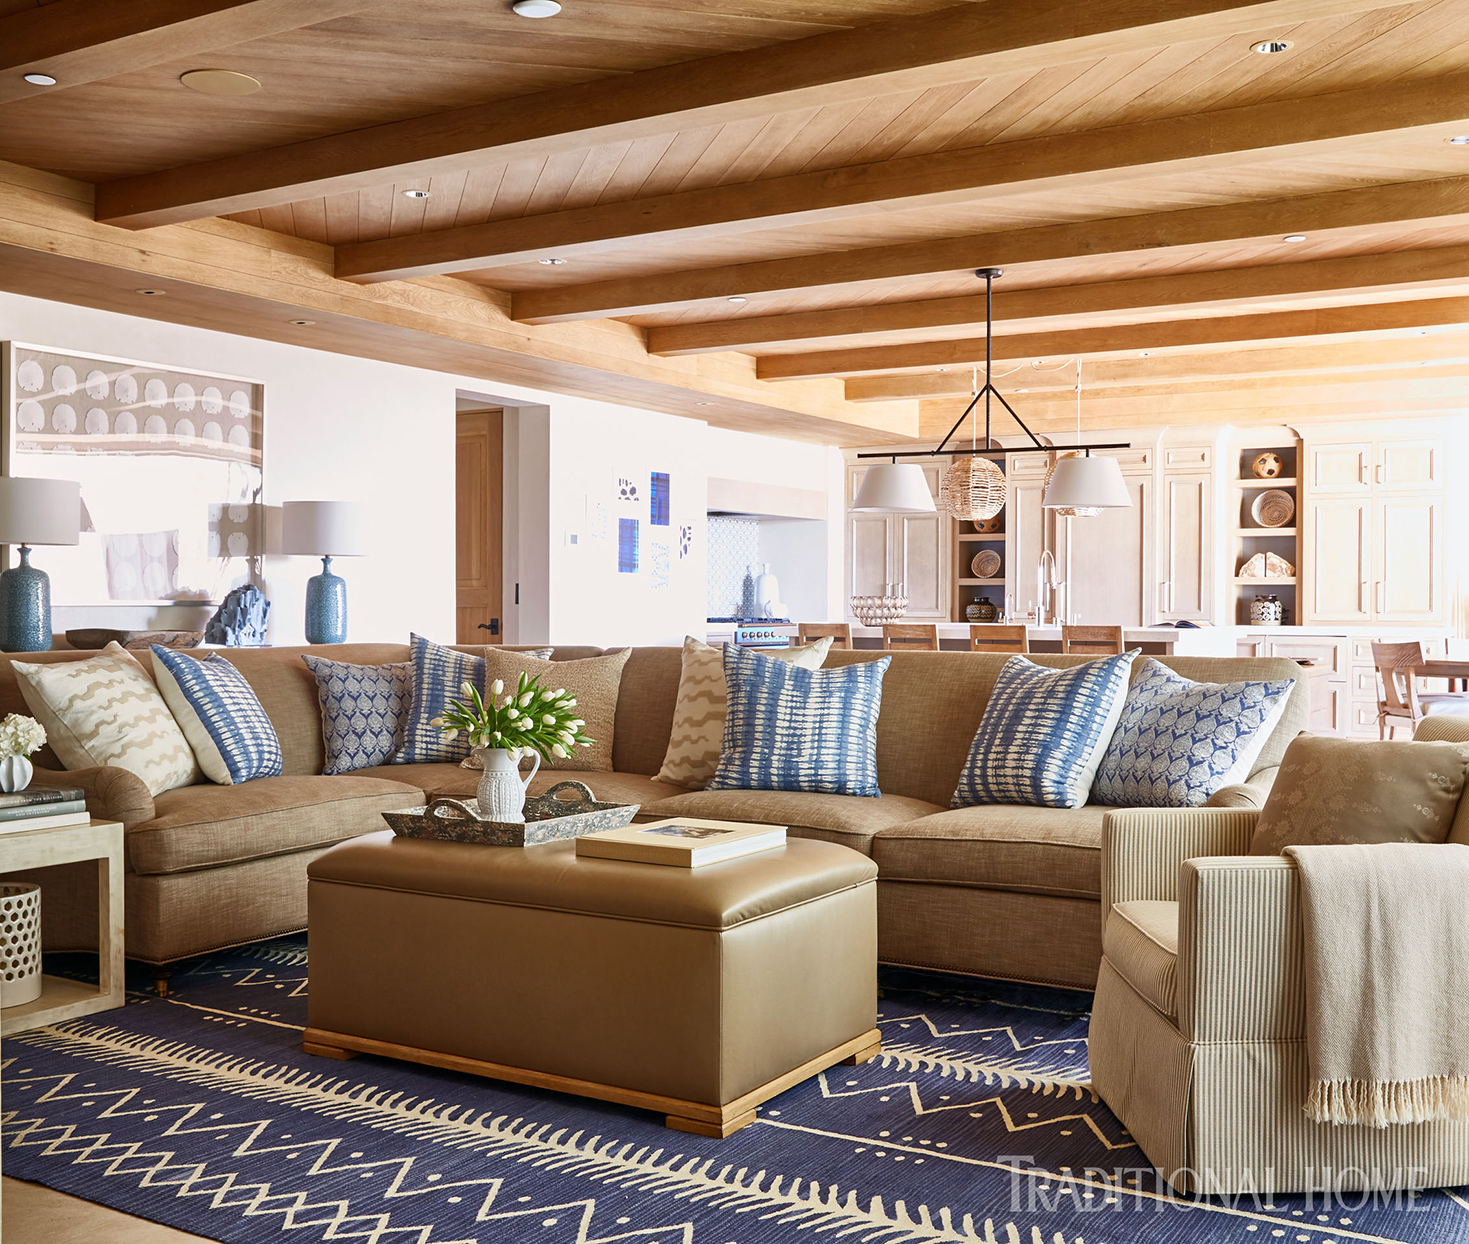 Living room with wooden ceiling and textured rug